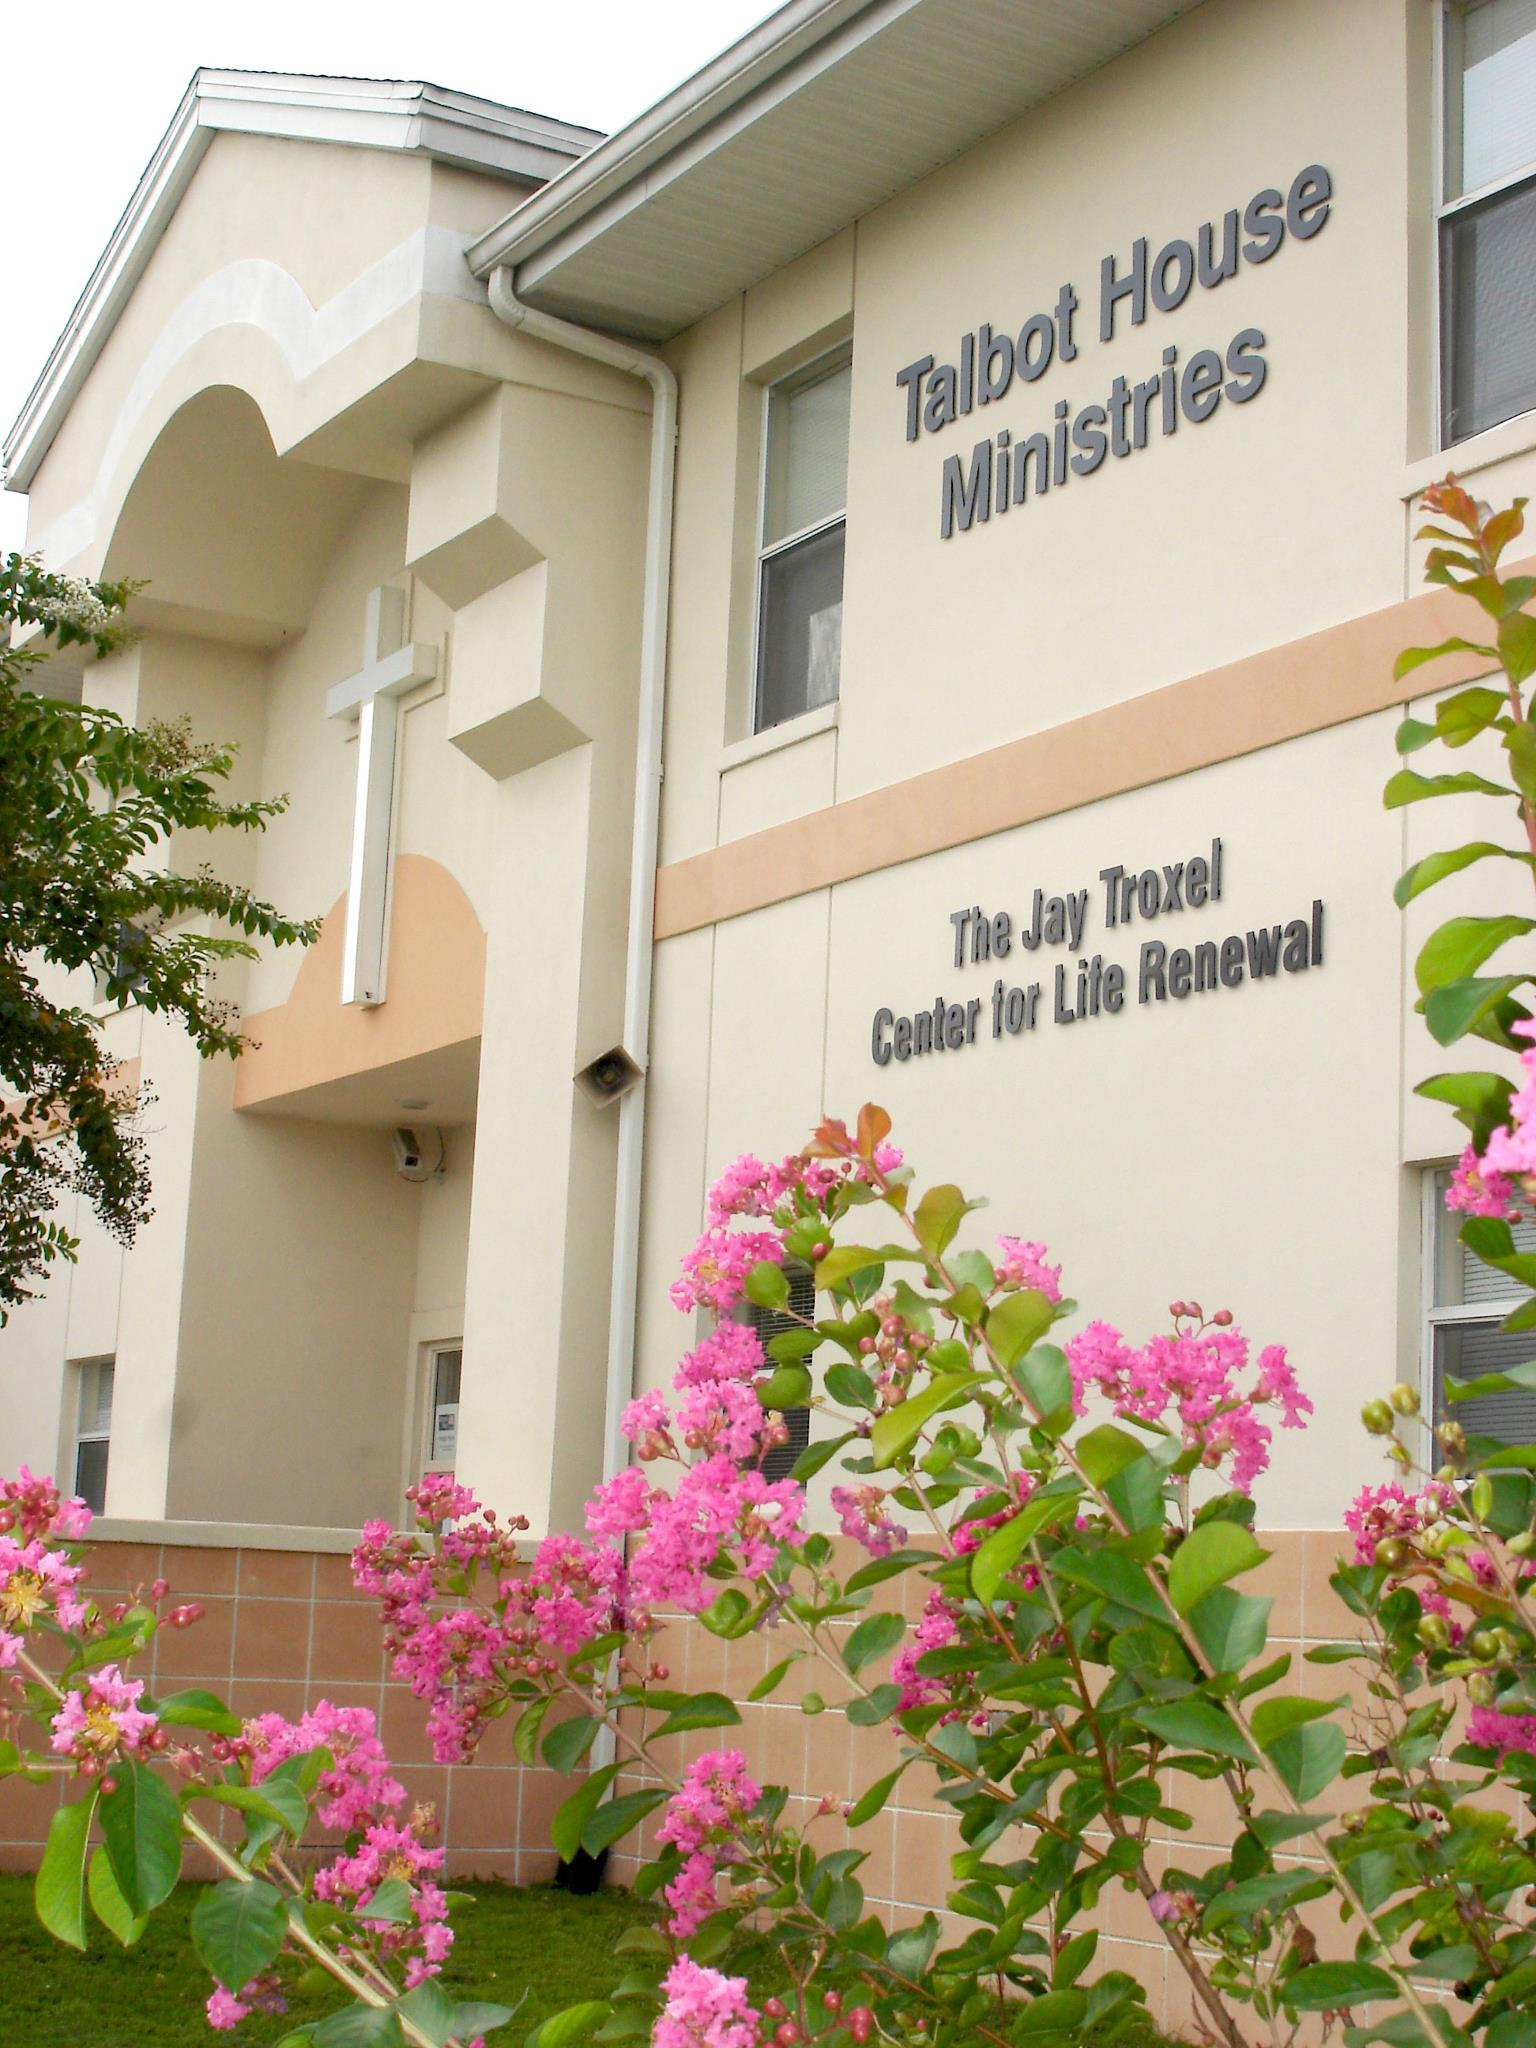 Talbot House Ministries Of Lakeland The Good Samaritan Free Clinic